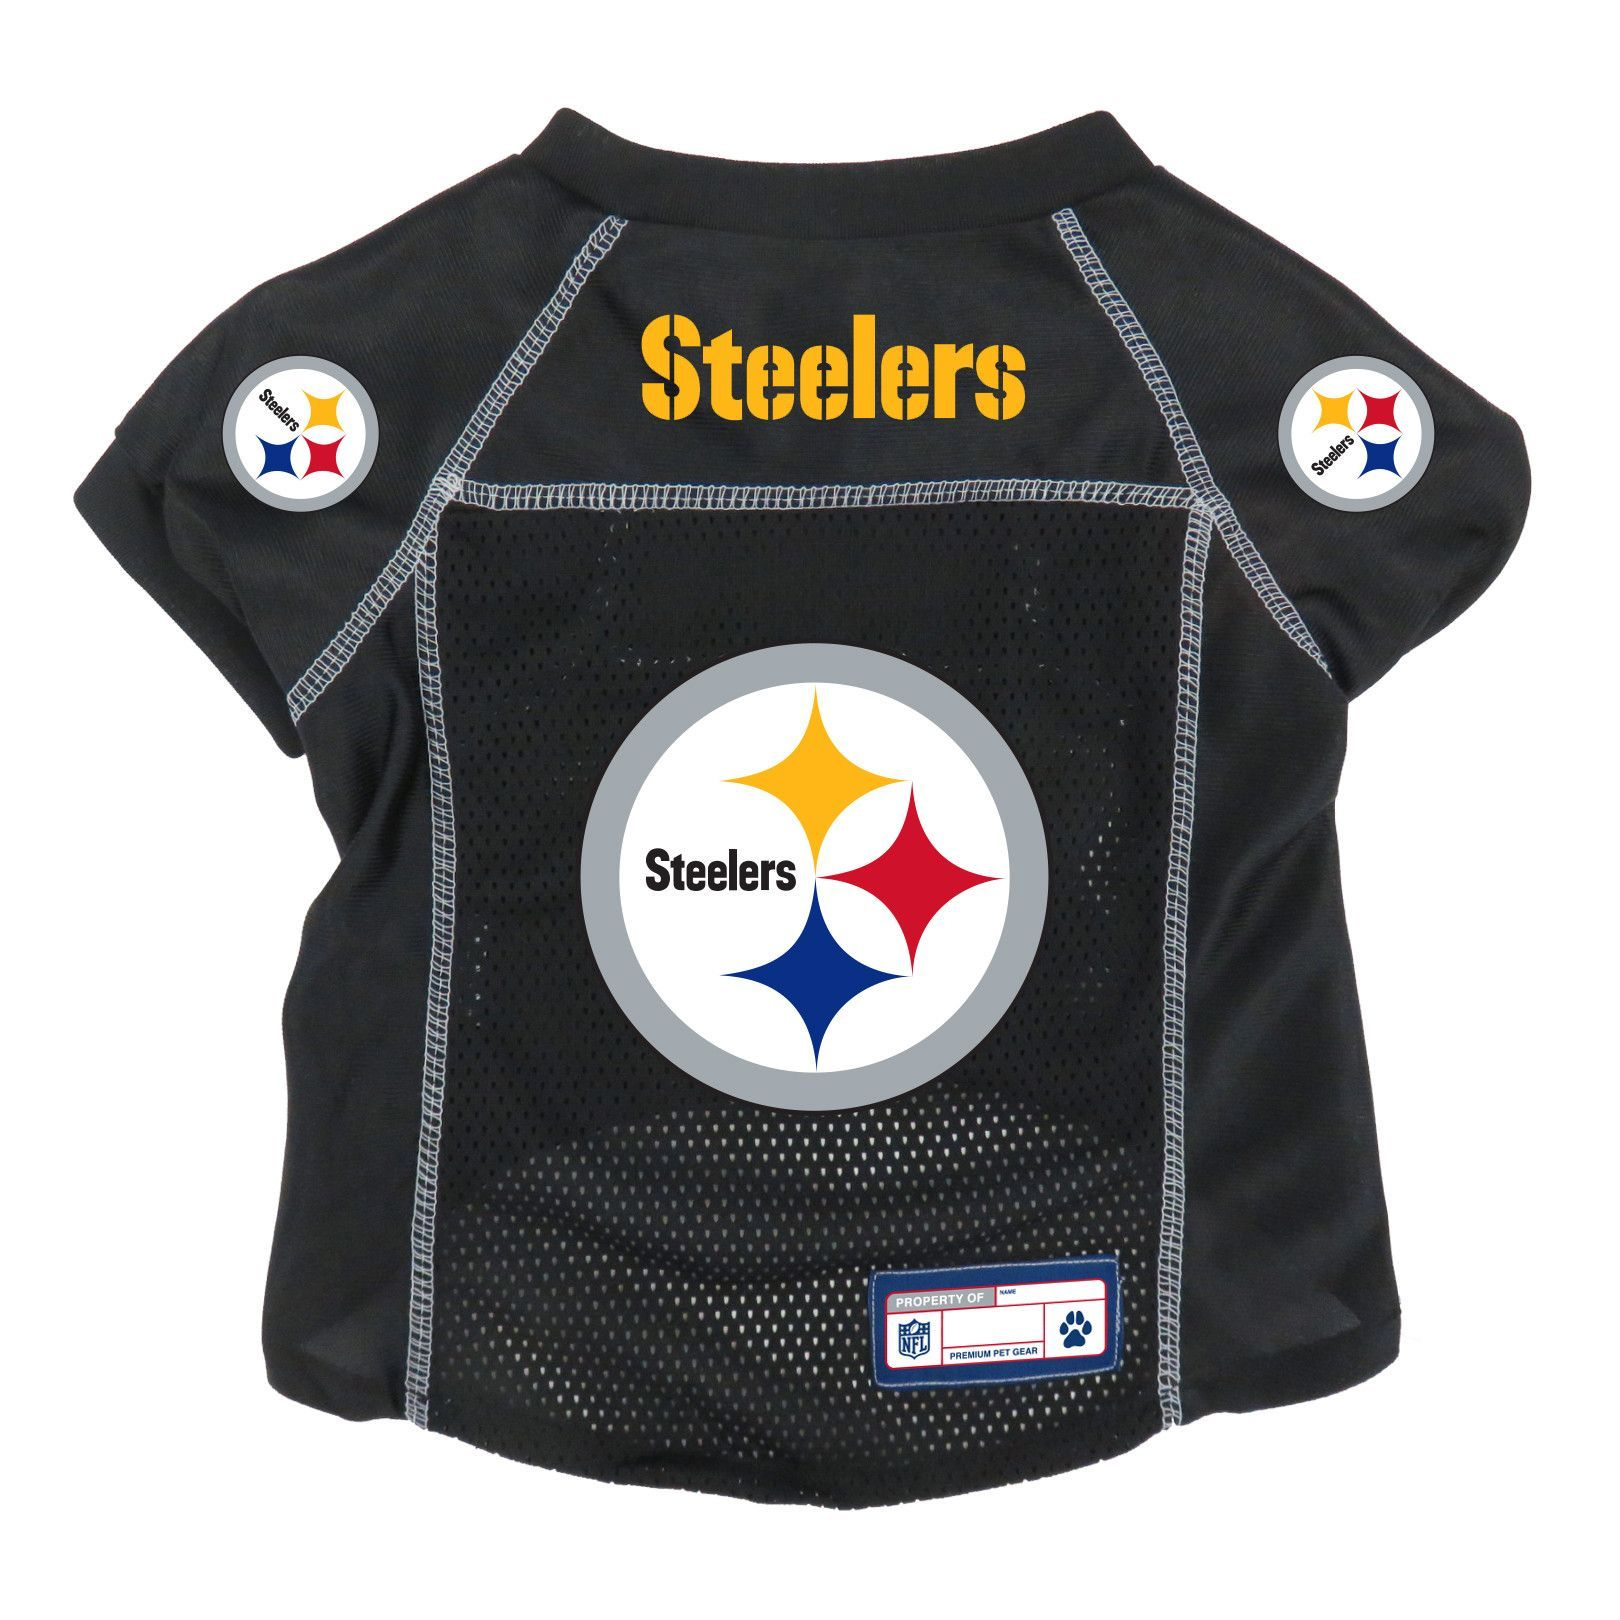 4d605a5c 2014 new nfl jerseys pittsburgh steelers 36 jerome bettis black gold ...